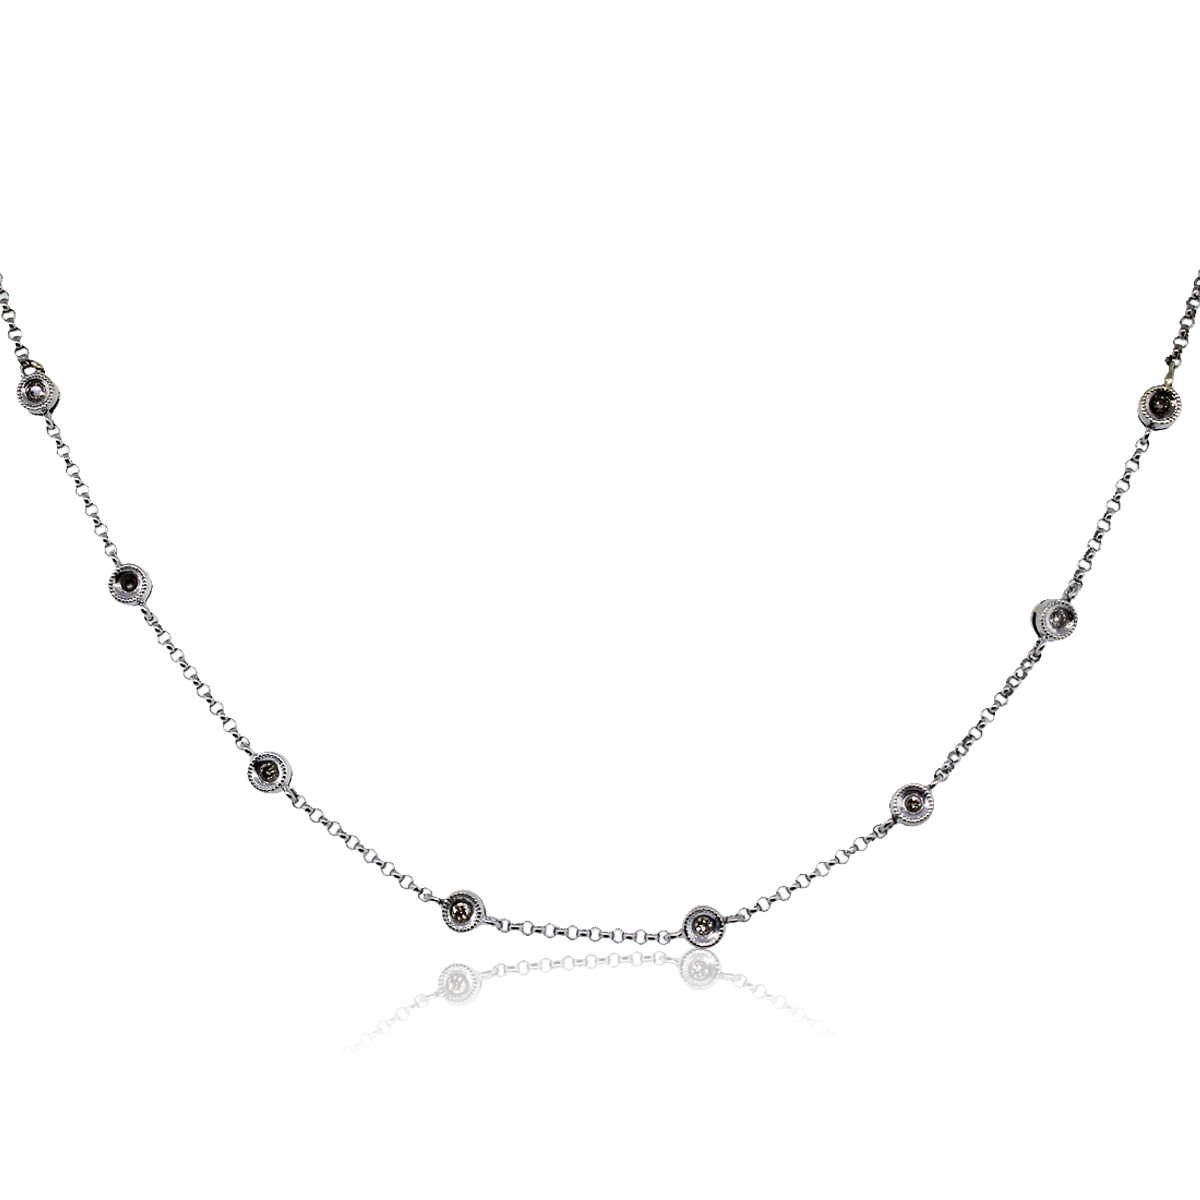 You are viewing this diamonds by the yard necklace!